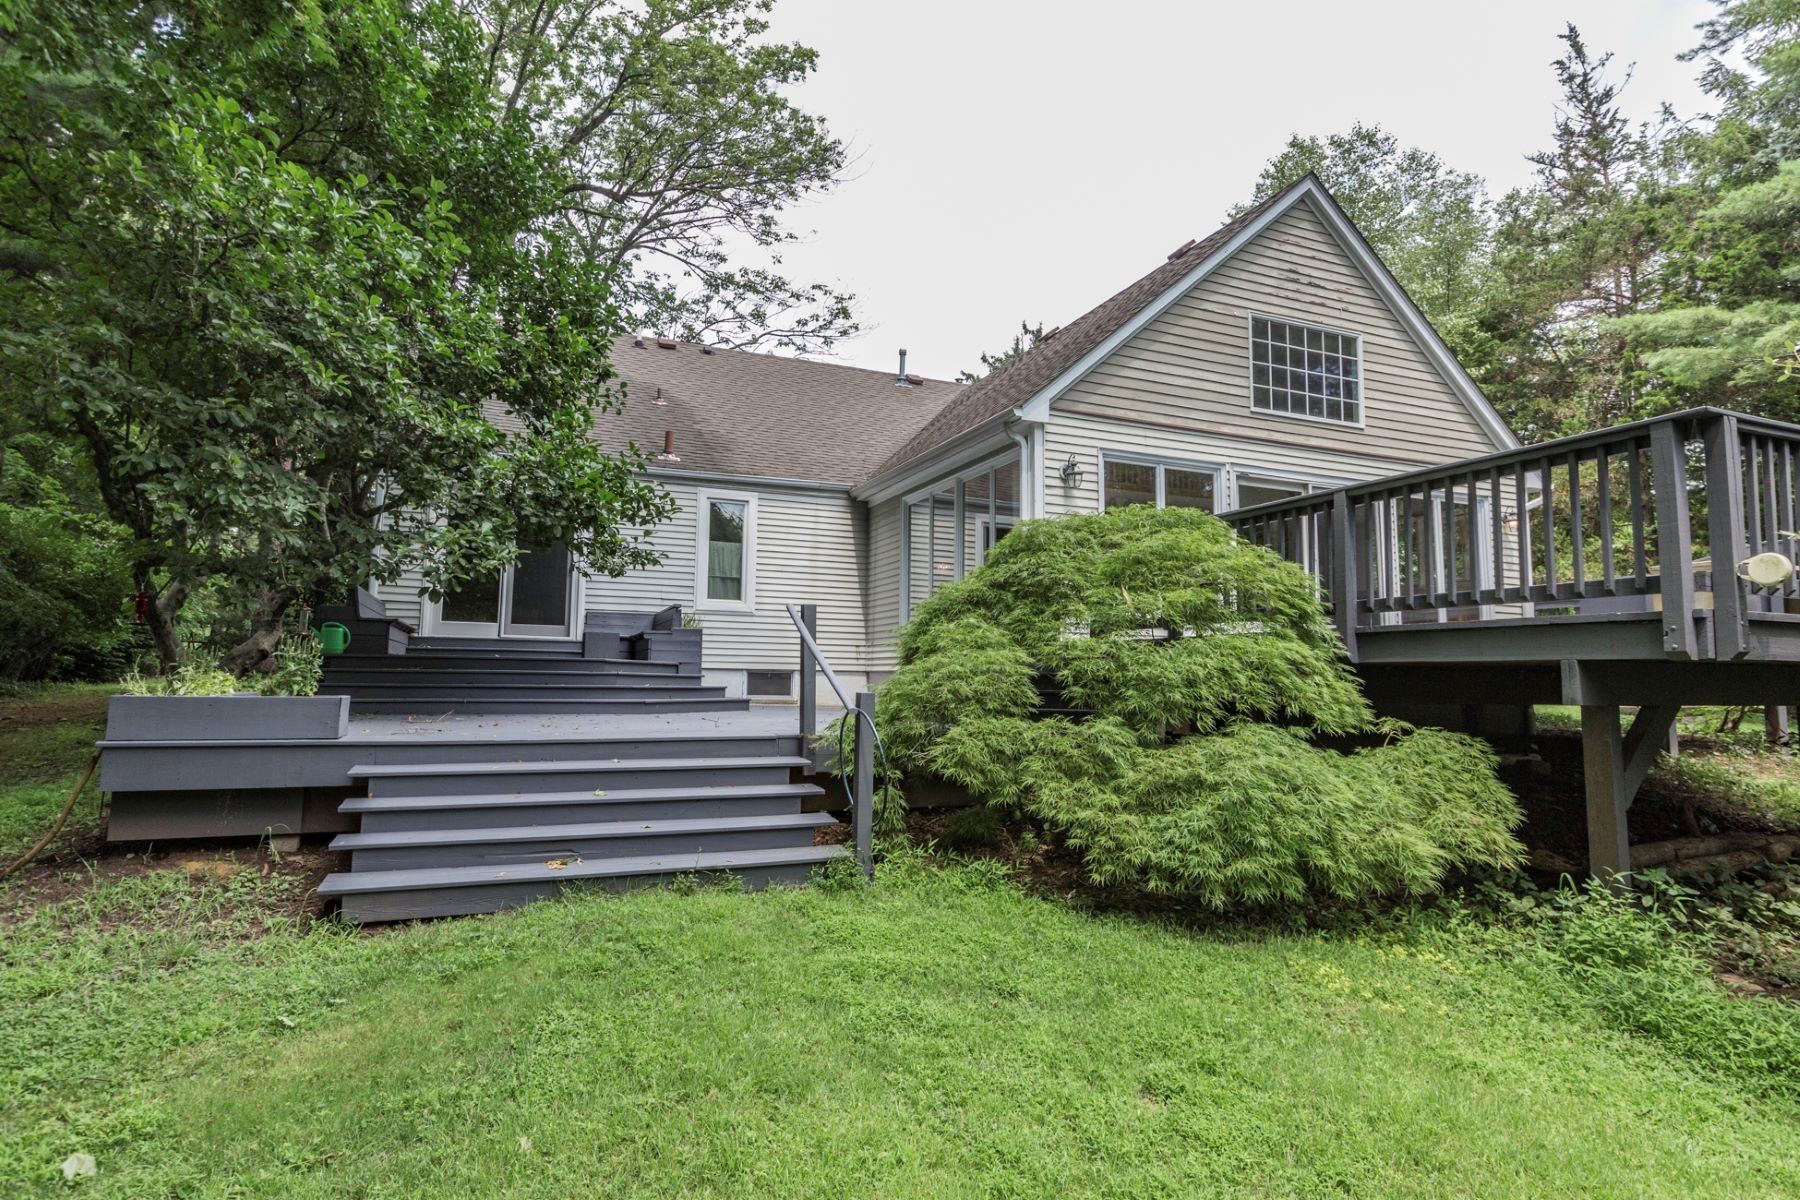 Additional photo for property listing at Filled to the Brim with Warmth and Character 661 Rosedale Road, Princeton, New Jersey 08540 United States